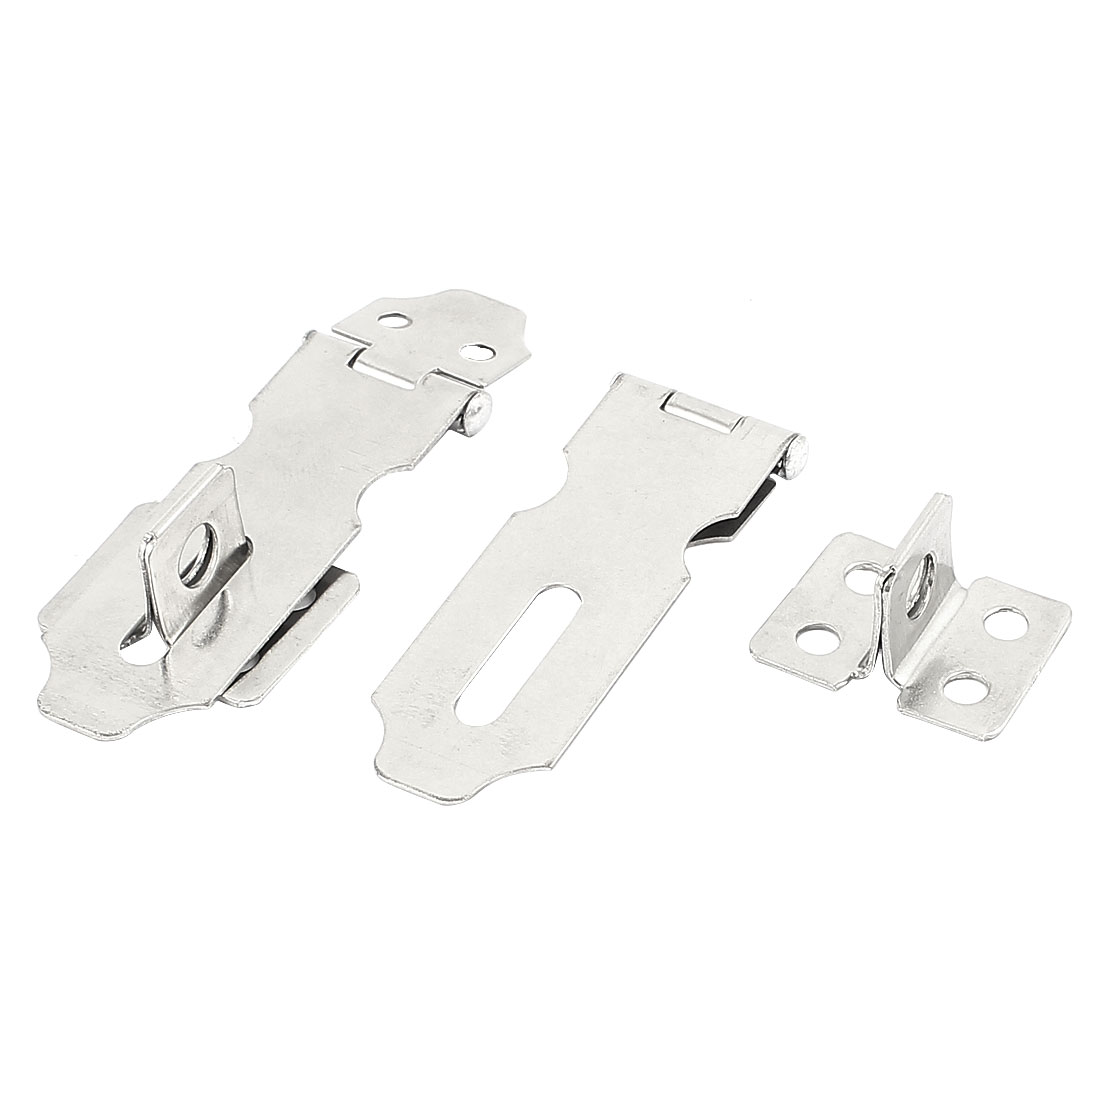 Home Office Cupboard Cabinets Window Door Padlock Latch Lock Hasp Staple Sets 56mm Long 2pcs